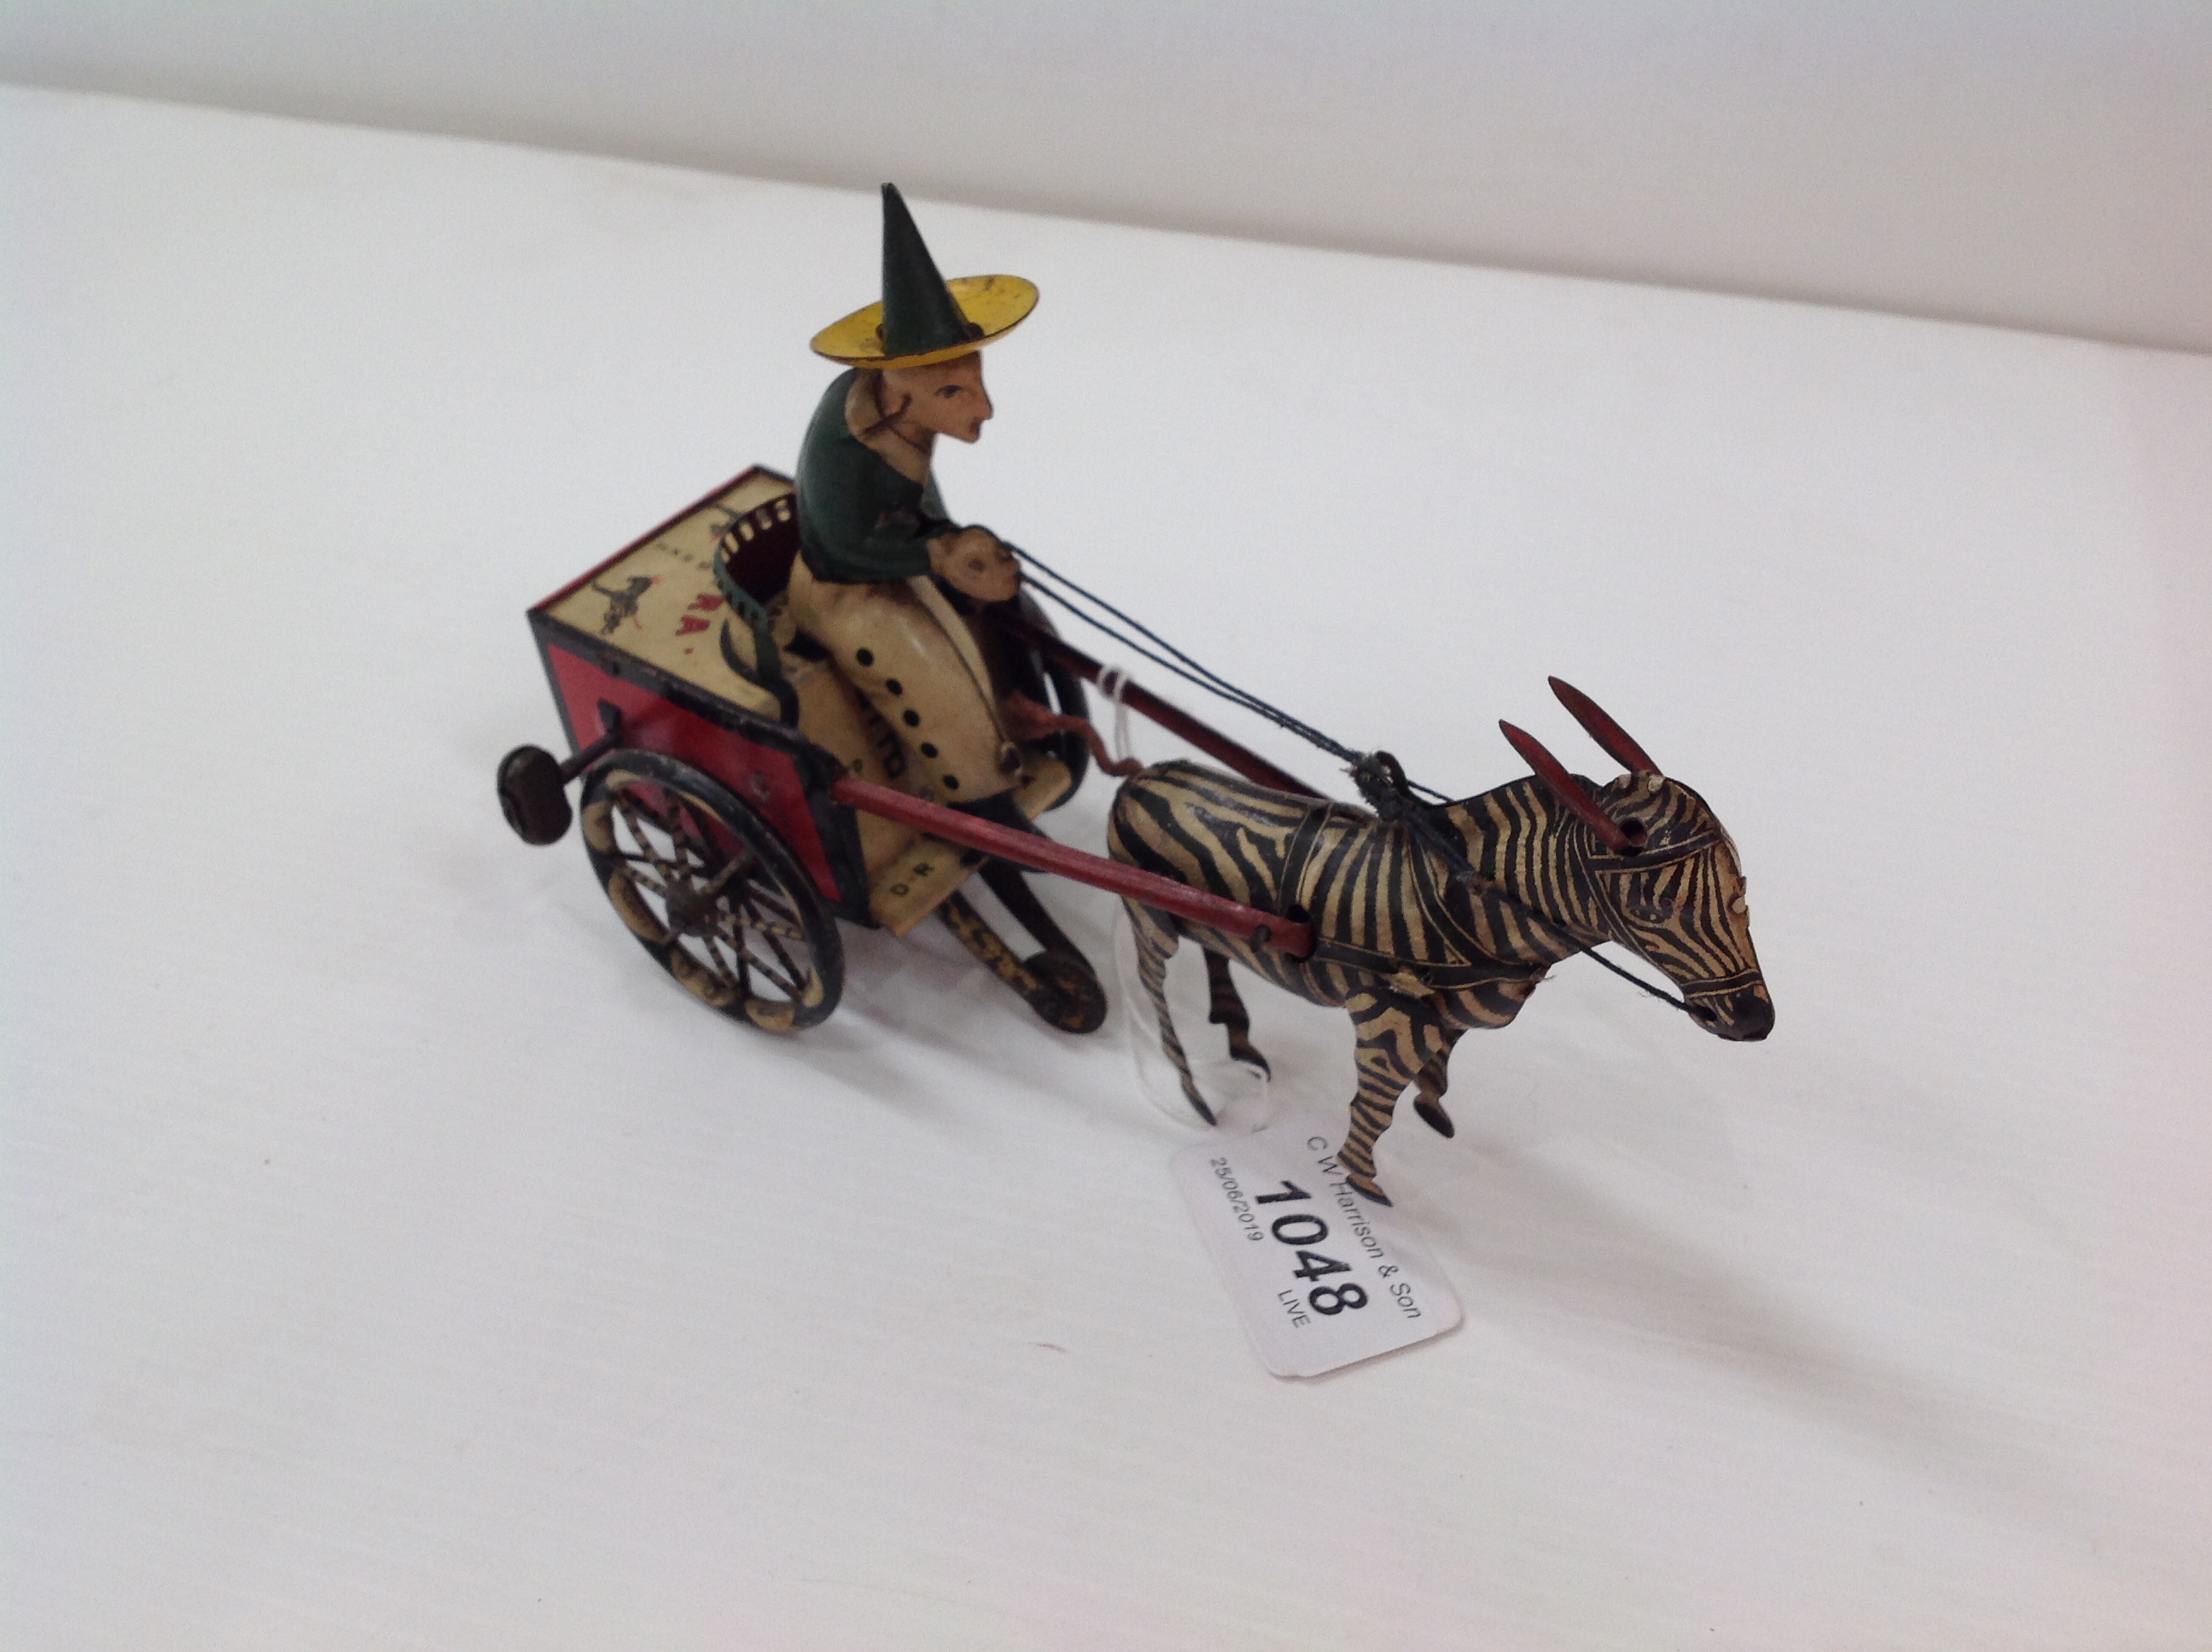 Lot 1048 - A Lehmann 752 lithograped Zikra Zebra cart complete with key - unboxed